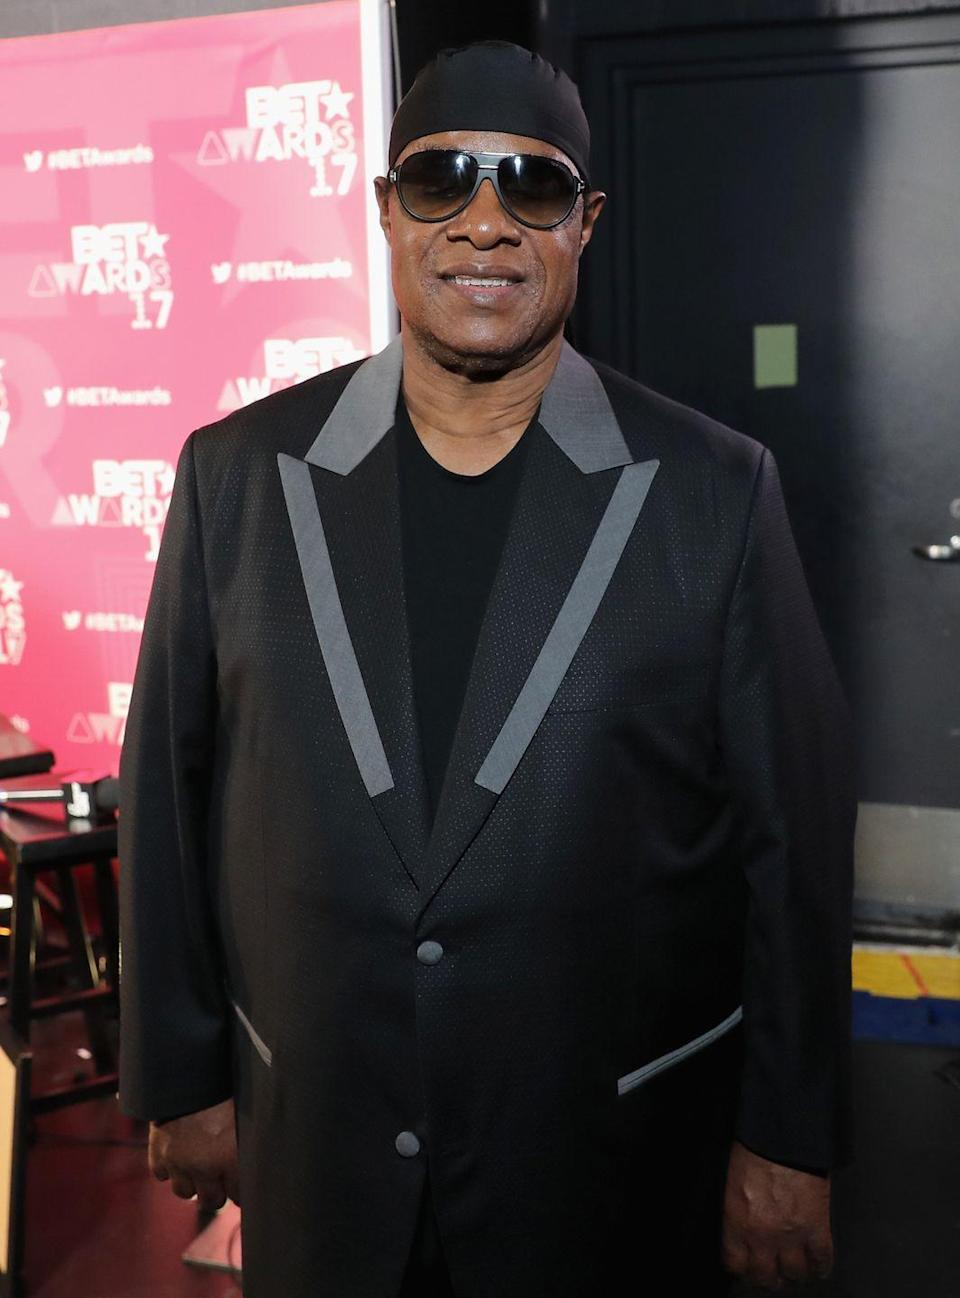 <p>Stevie Wonder's career maybe wouldn't have been so wonderful if he hadn't changed his name from Stevland Hardaway Judkins before he broke out.</p>